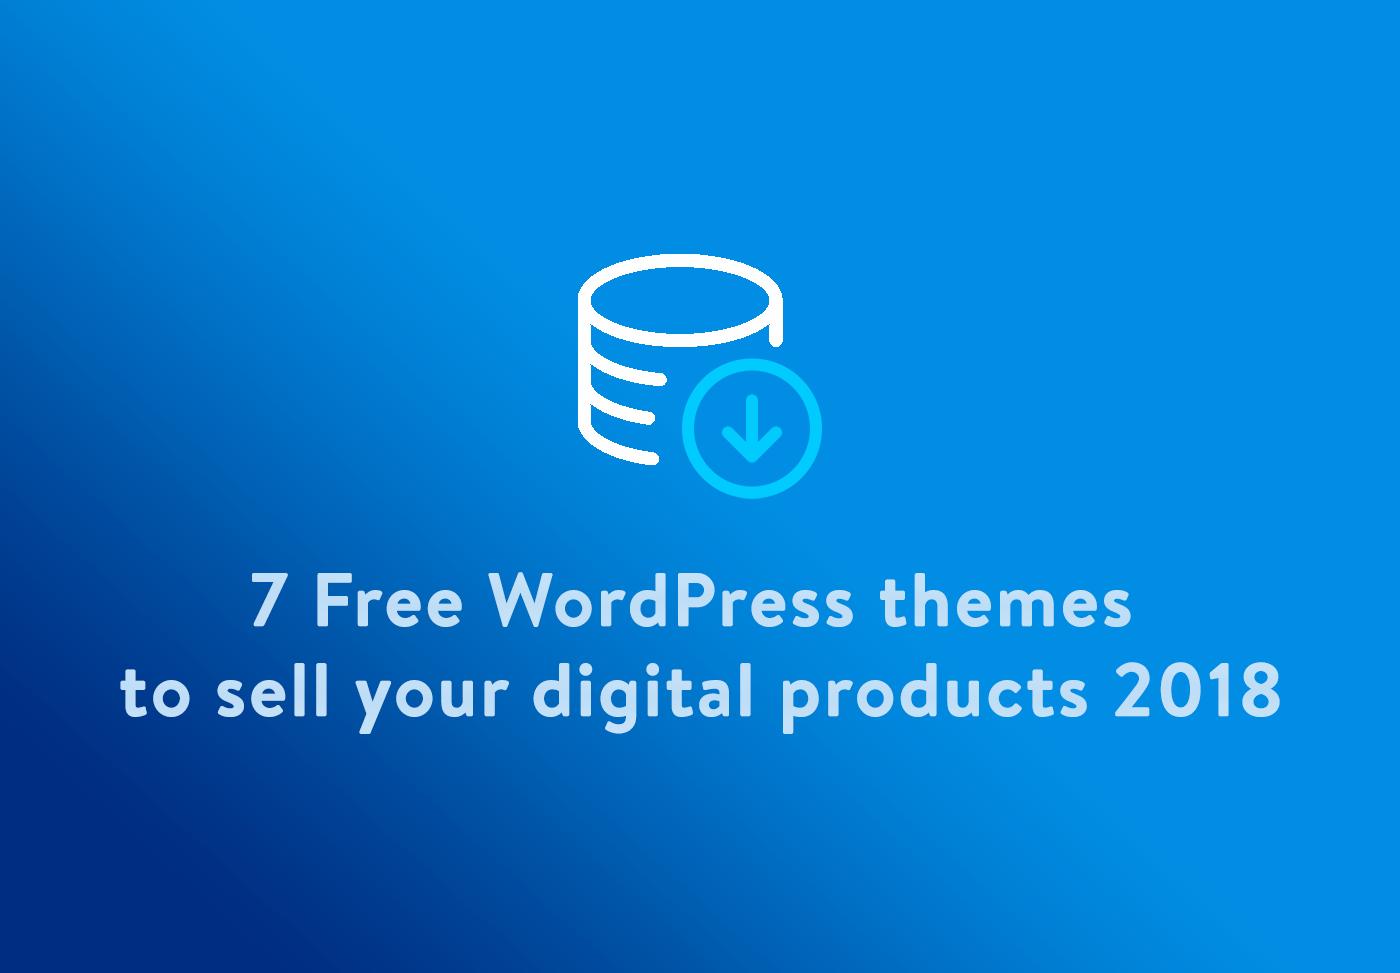 7 Free WordPress themes to sell your digital products 2018